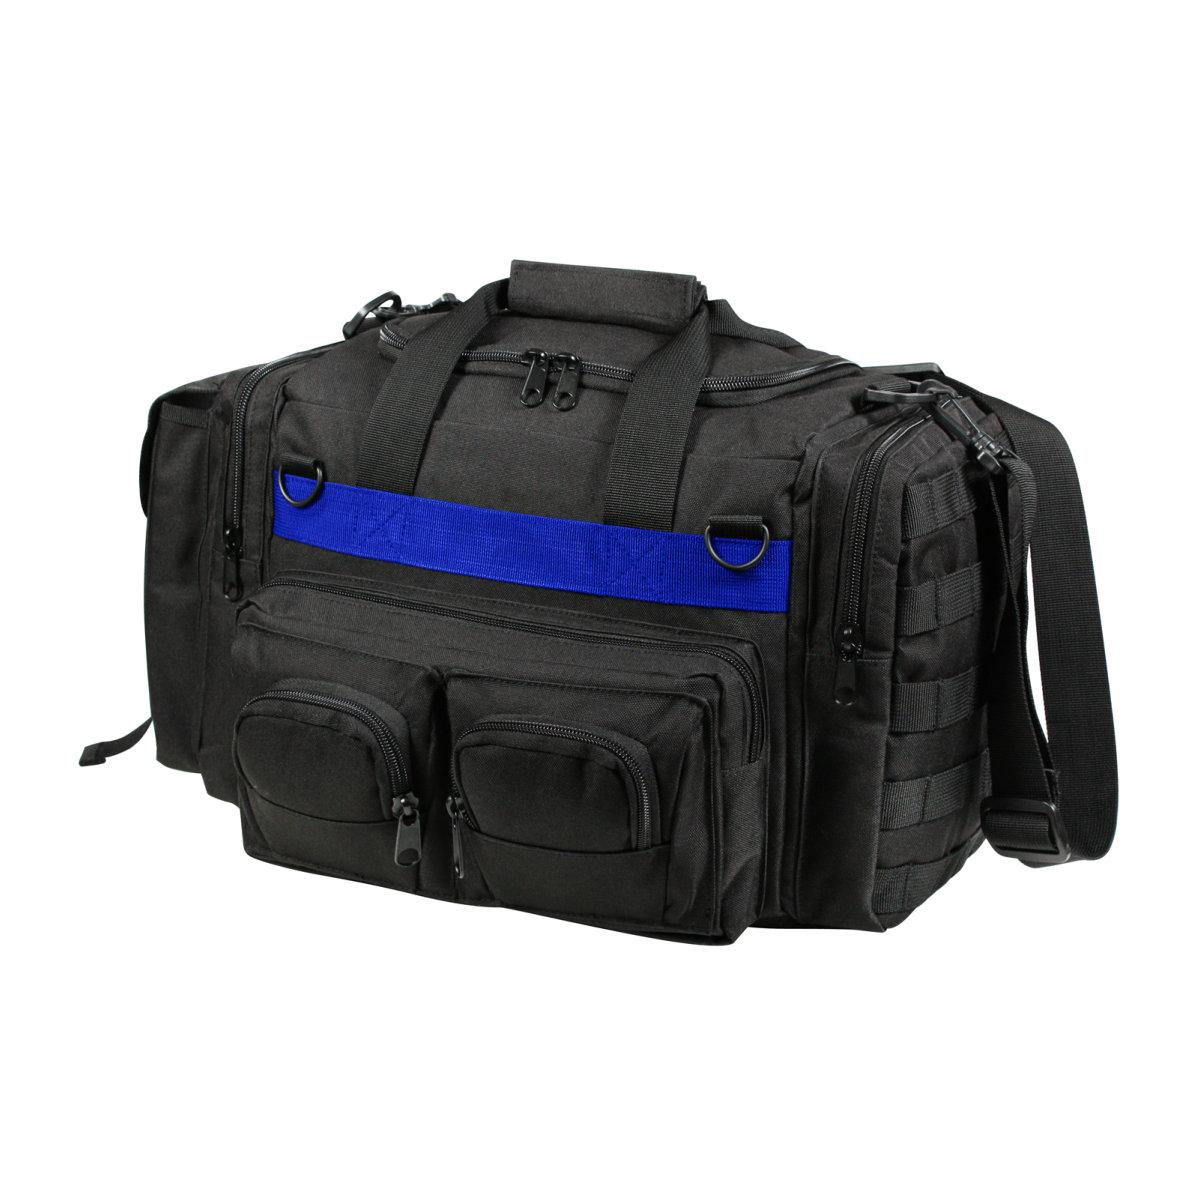 Rothco Thin Blue Line Concealed Carry Bag, Tactical Pack